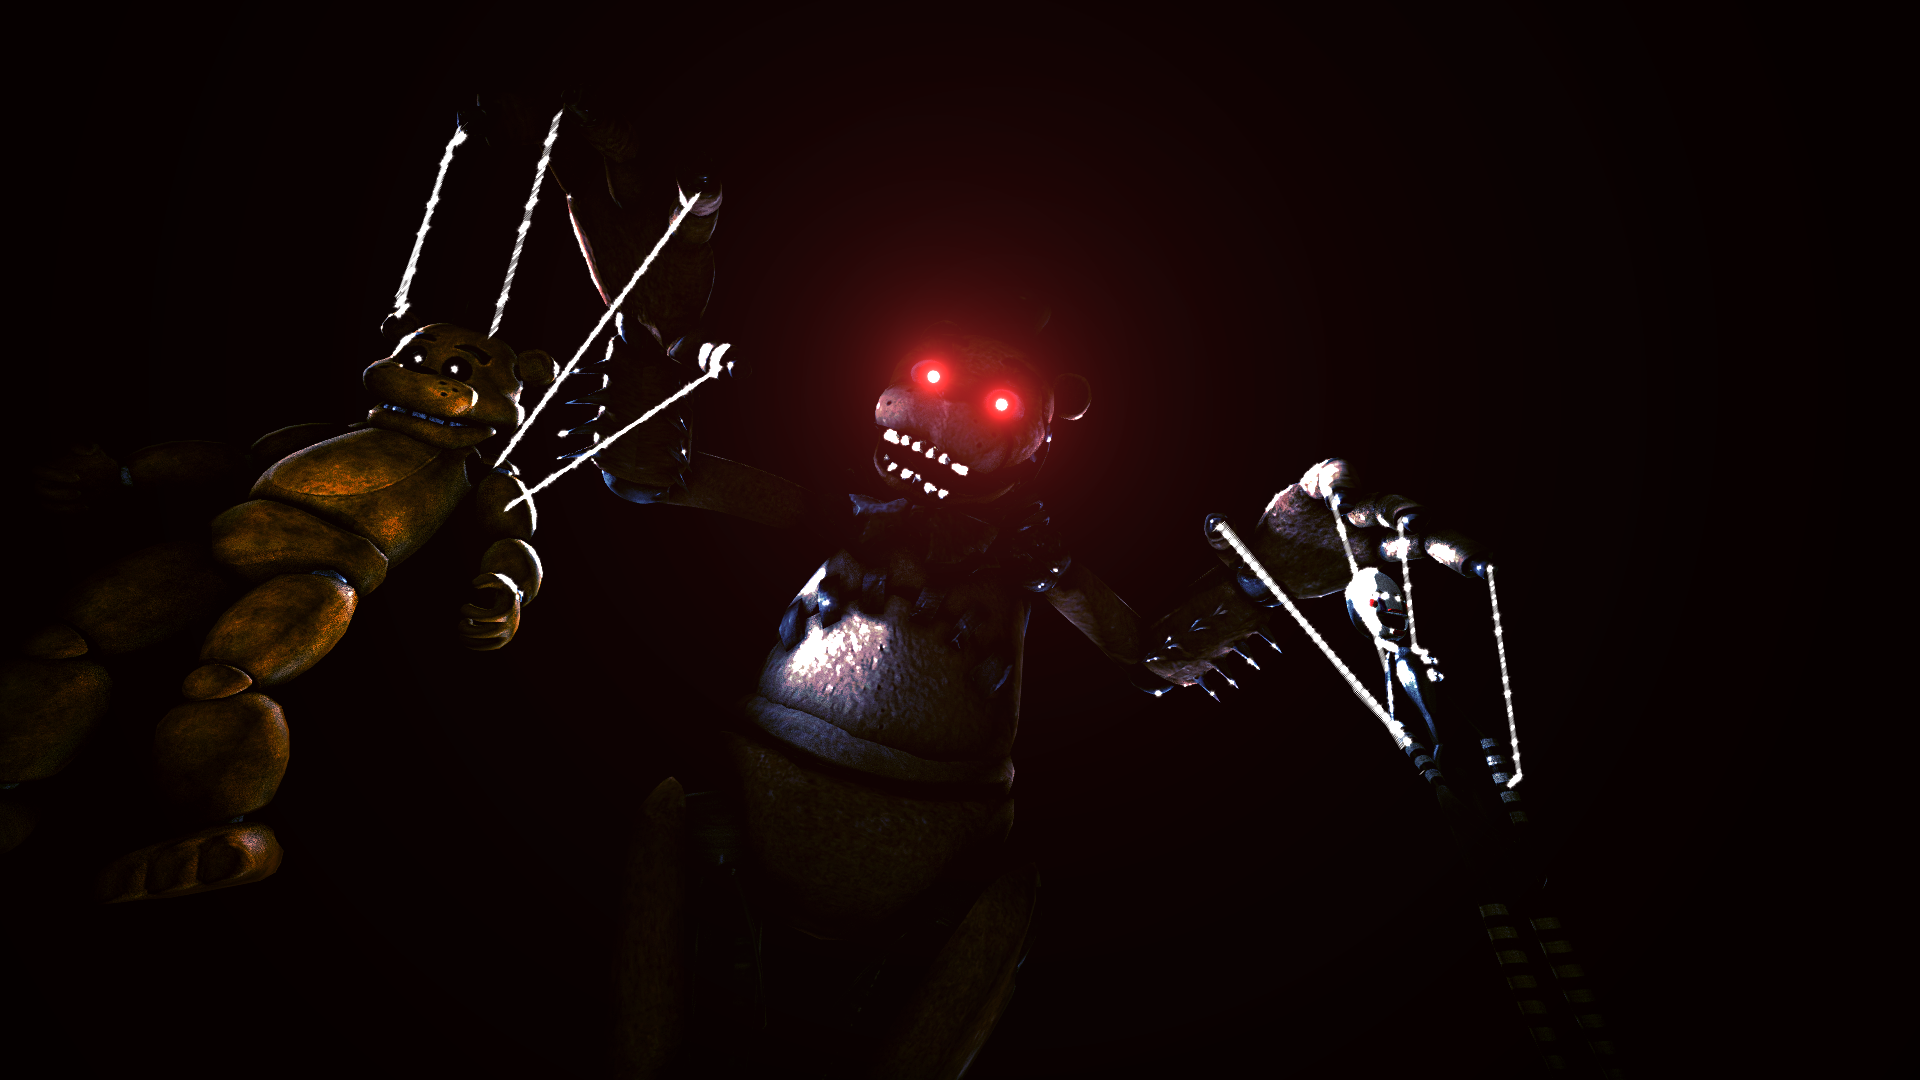 Drawkill freddy the puppeteer by ionyen on deviantart